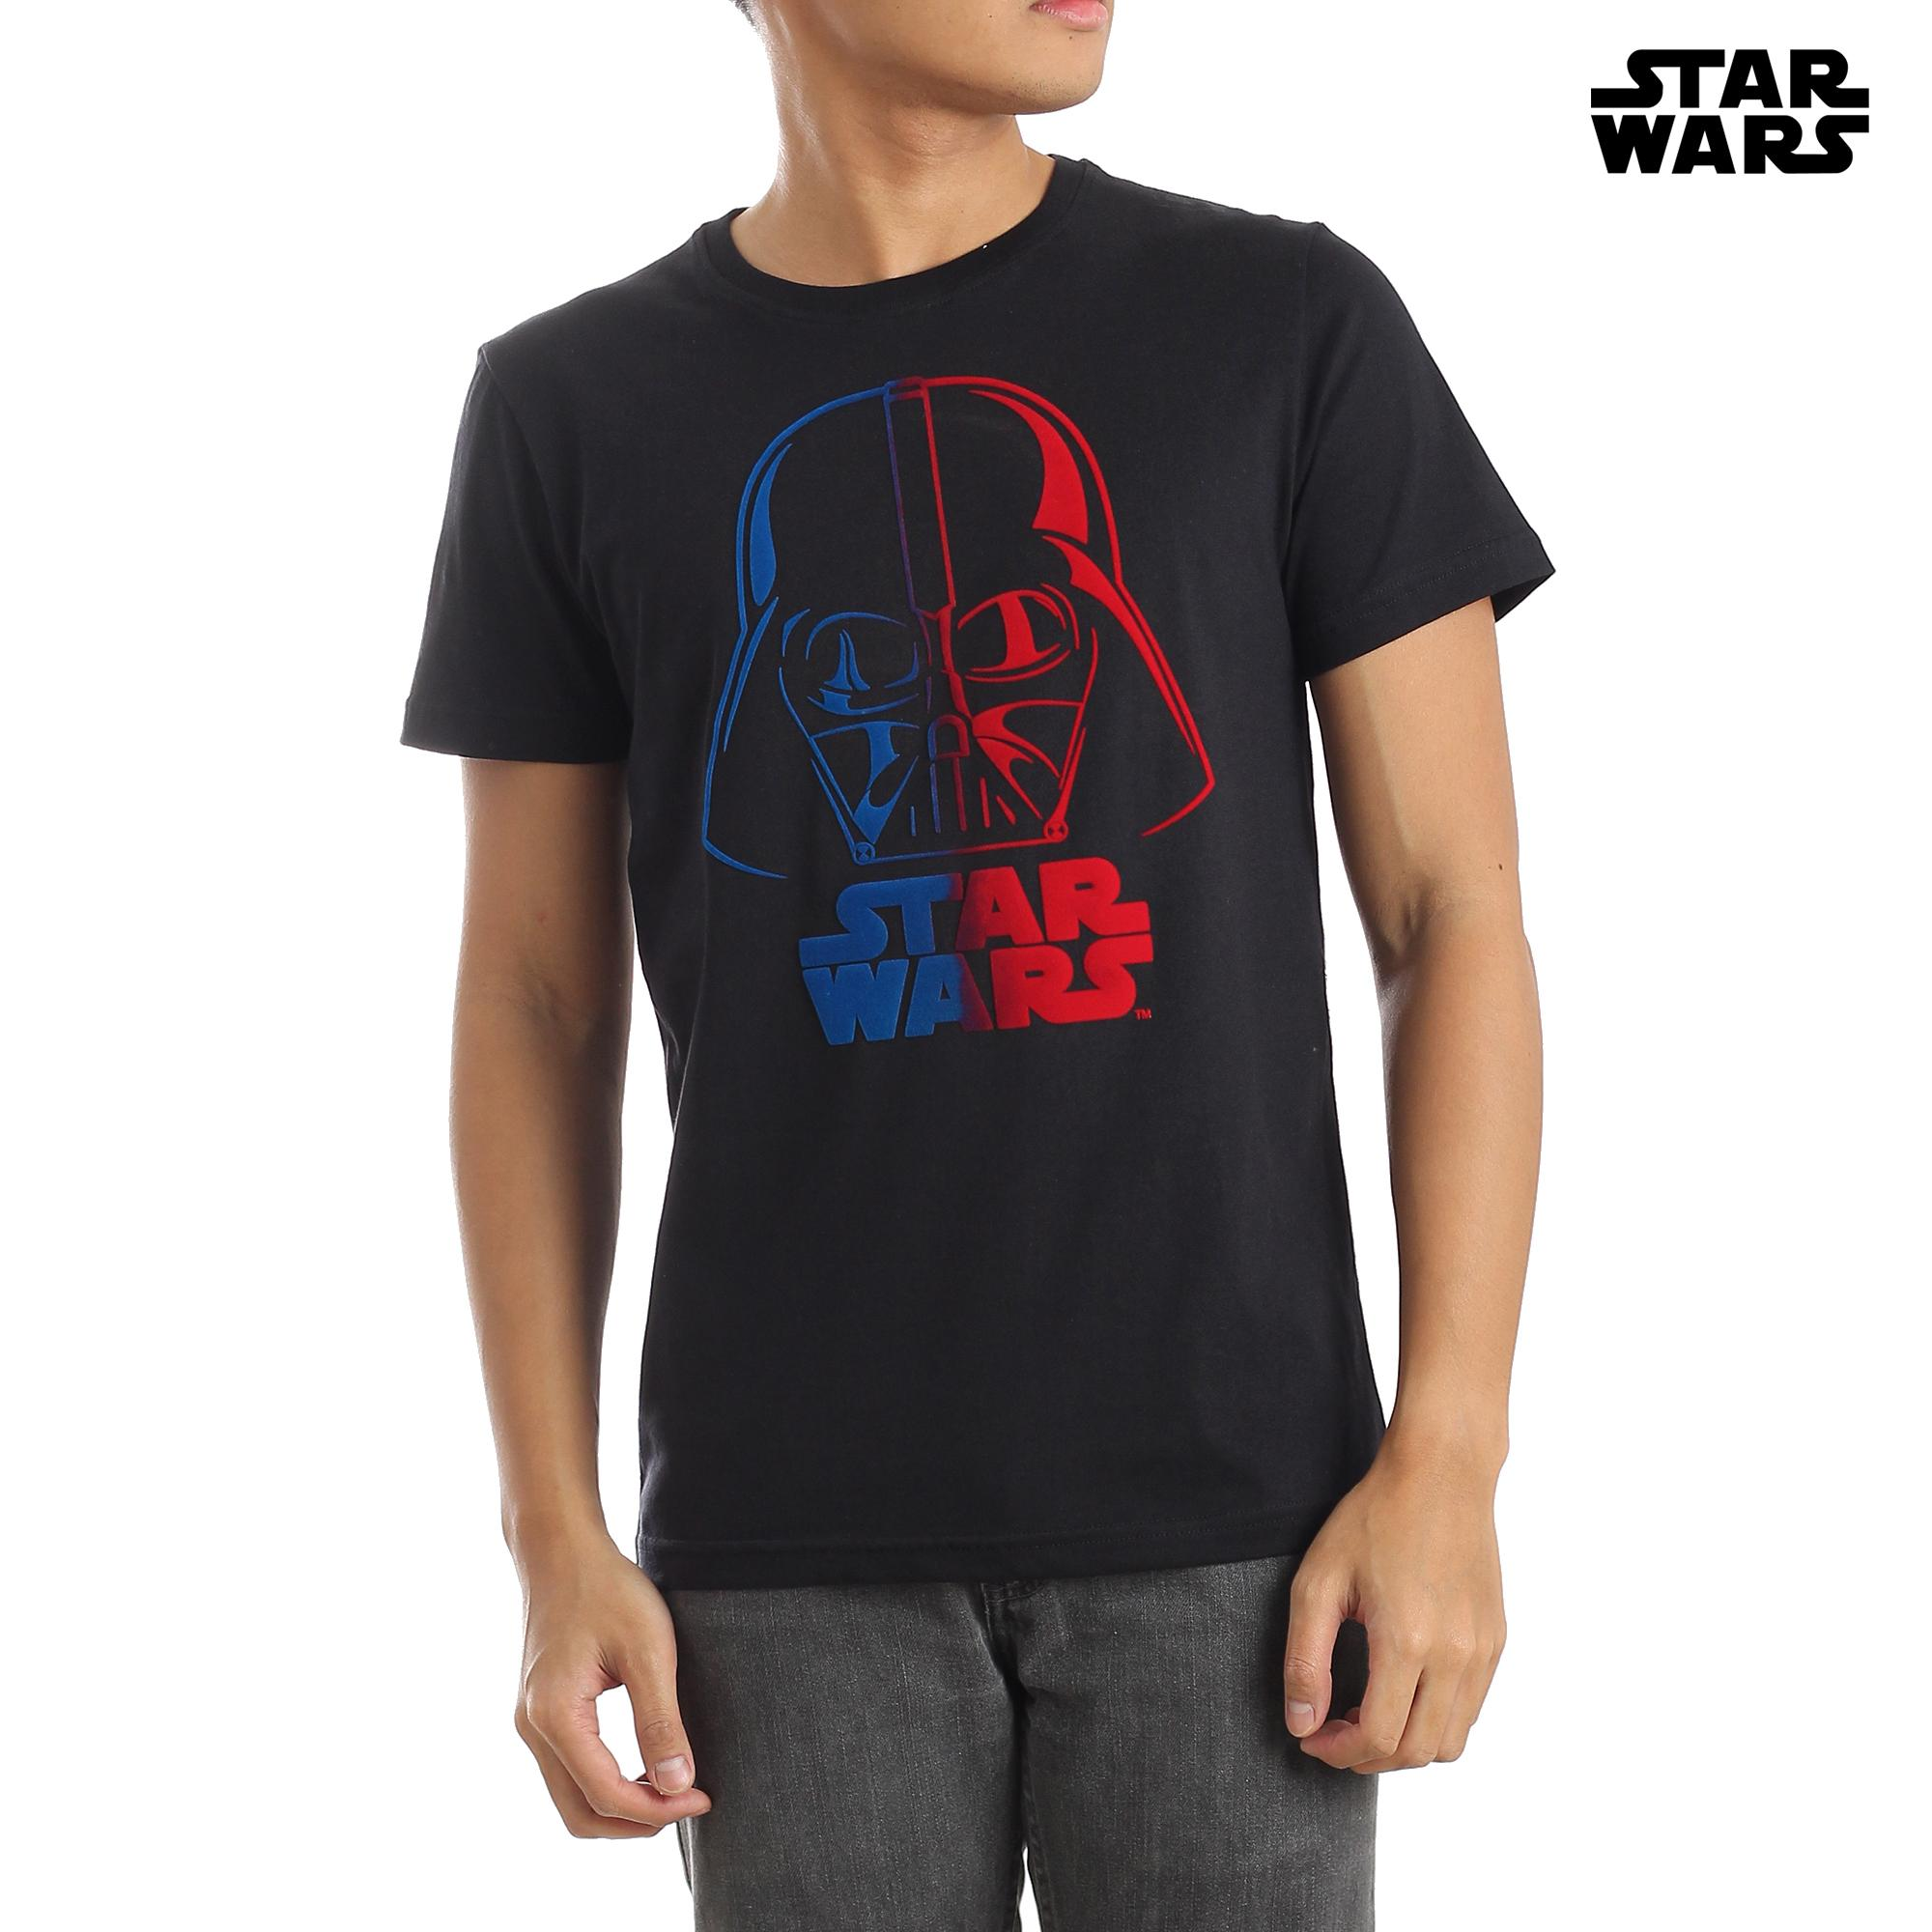 46eb1e53f Star Wars Philippines: Star Wars price list - Toy, Collectibles ...